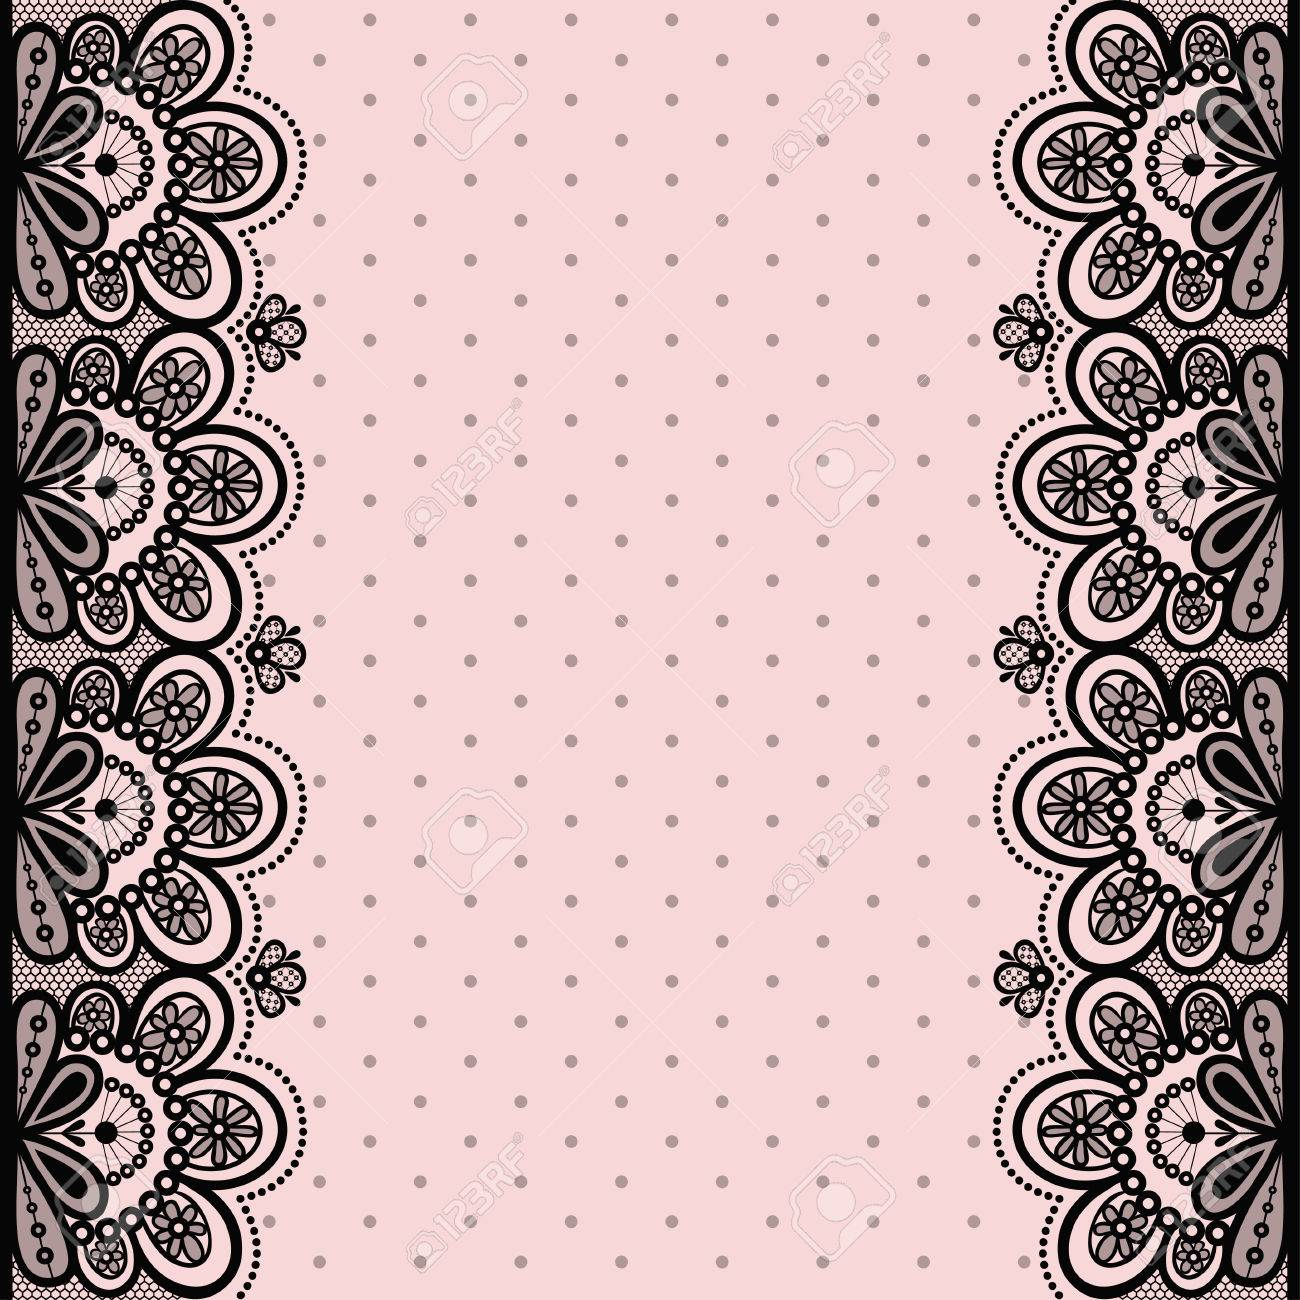 Seamless vector illustration with lace on a pink background. Stock Vector -  48493271 b89d510bf